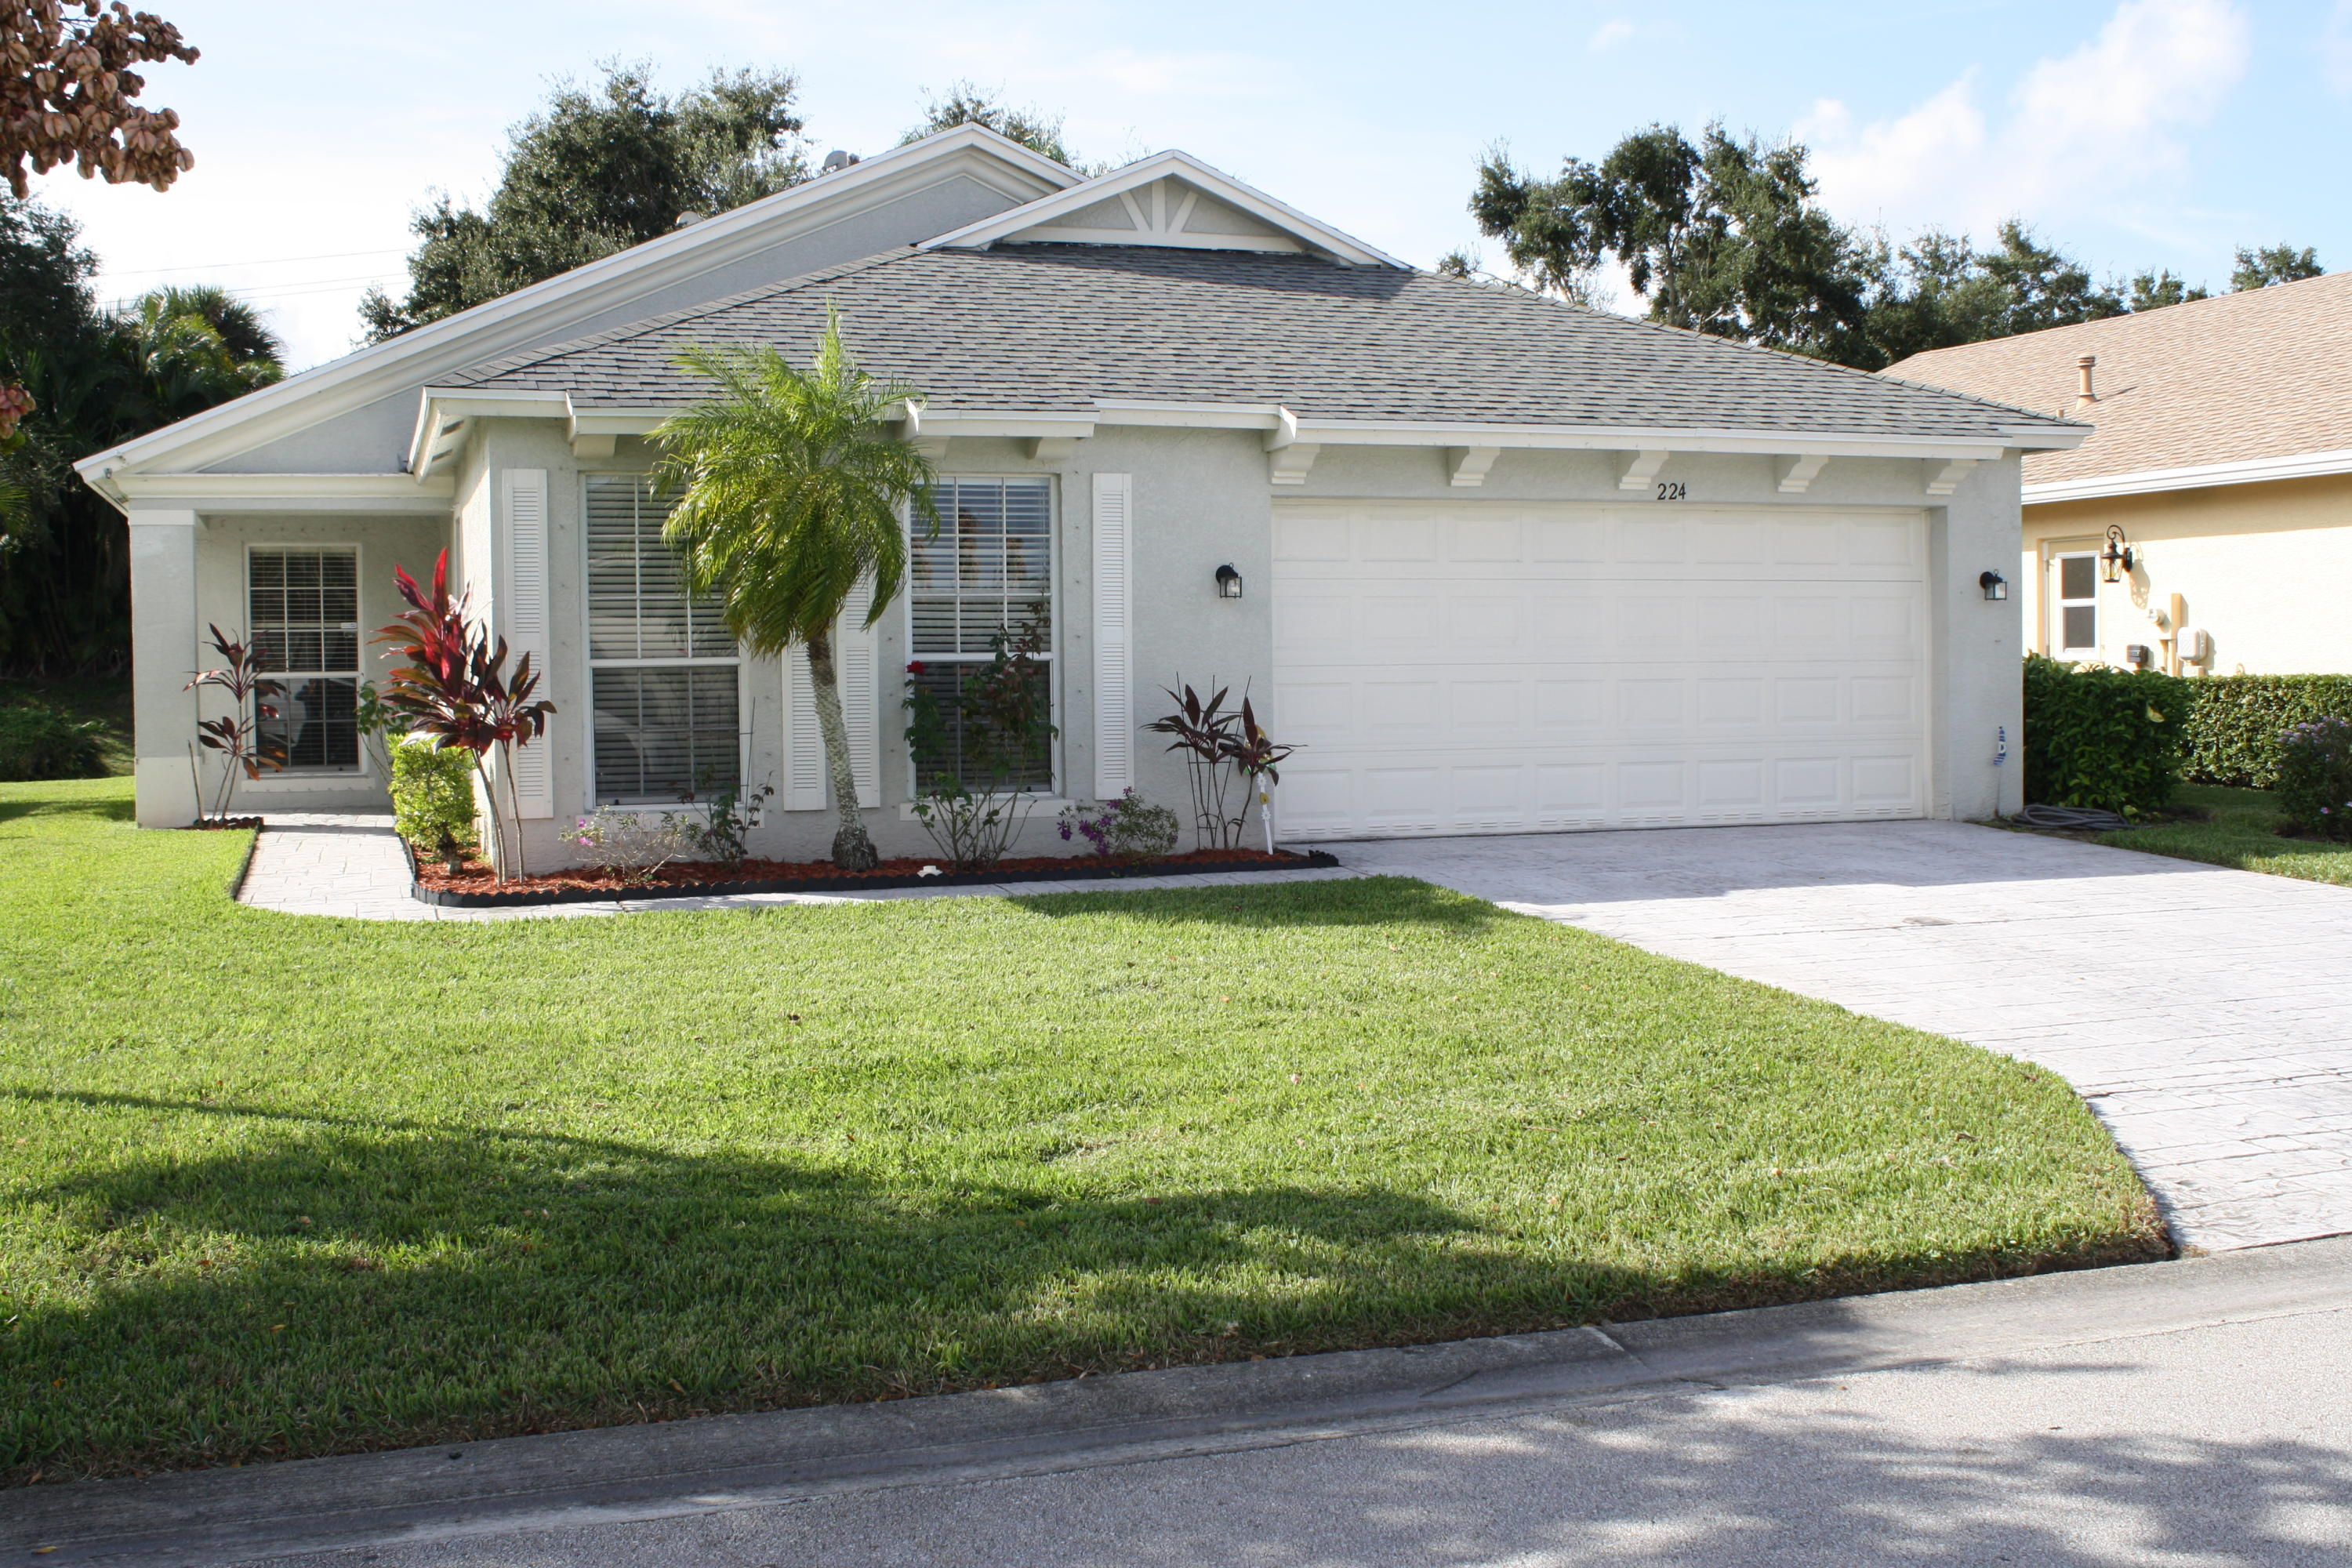 Desirable Lake Forest gated community, CBS 3 bedroom, 2 bath, 2 car garage with a large backyard, AC replaced in 2014, gas water heater in 2015, new toilet in Master bathroom in 2018, concrete stamped and painted driveway in 2014, new screened patio in 2018, exterior of house painted in 2014, wood laminate floors in 2015 and garbage disposal replaced in 2017.  This beautiful community is located in St. Lucie West and just minutes to shopping, schools, & churches.